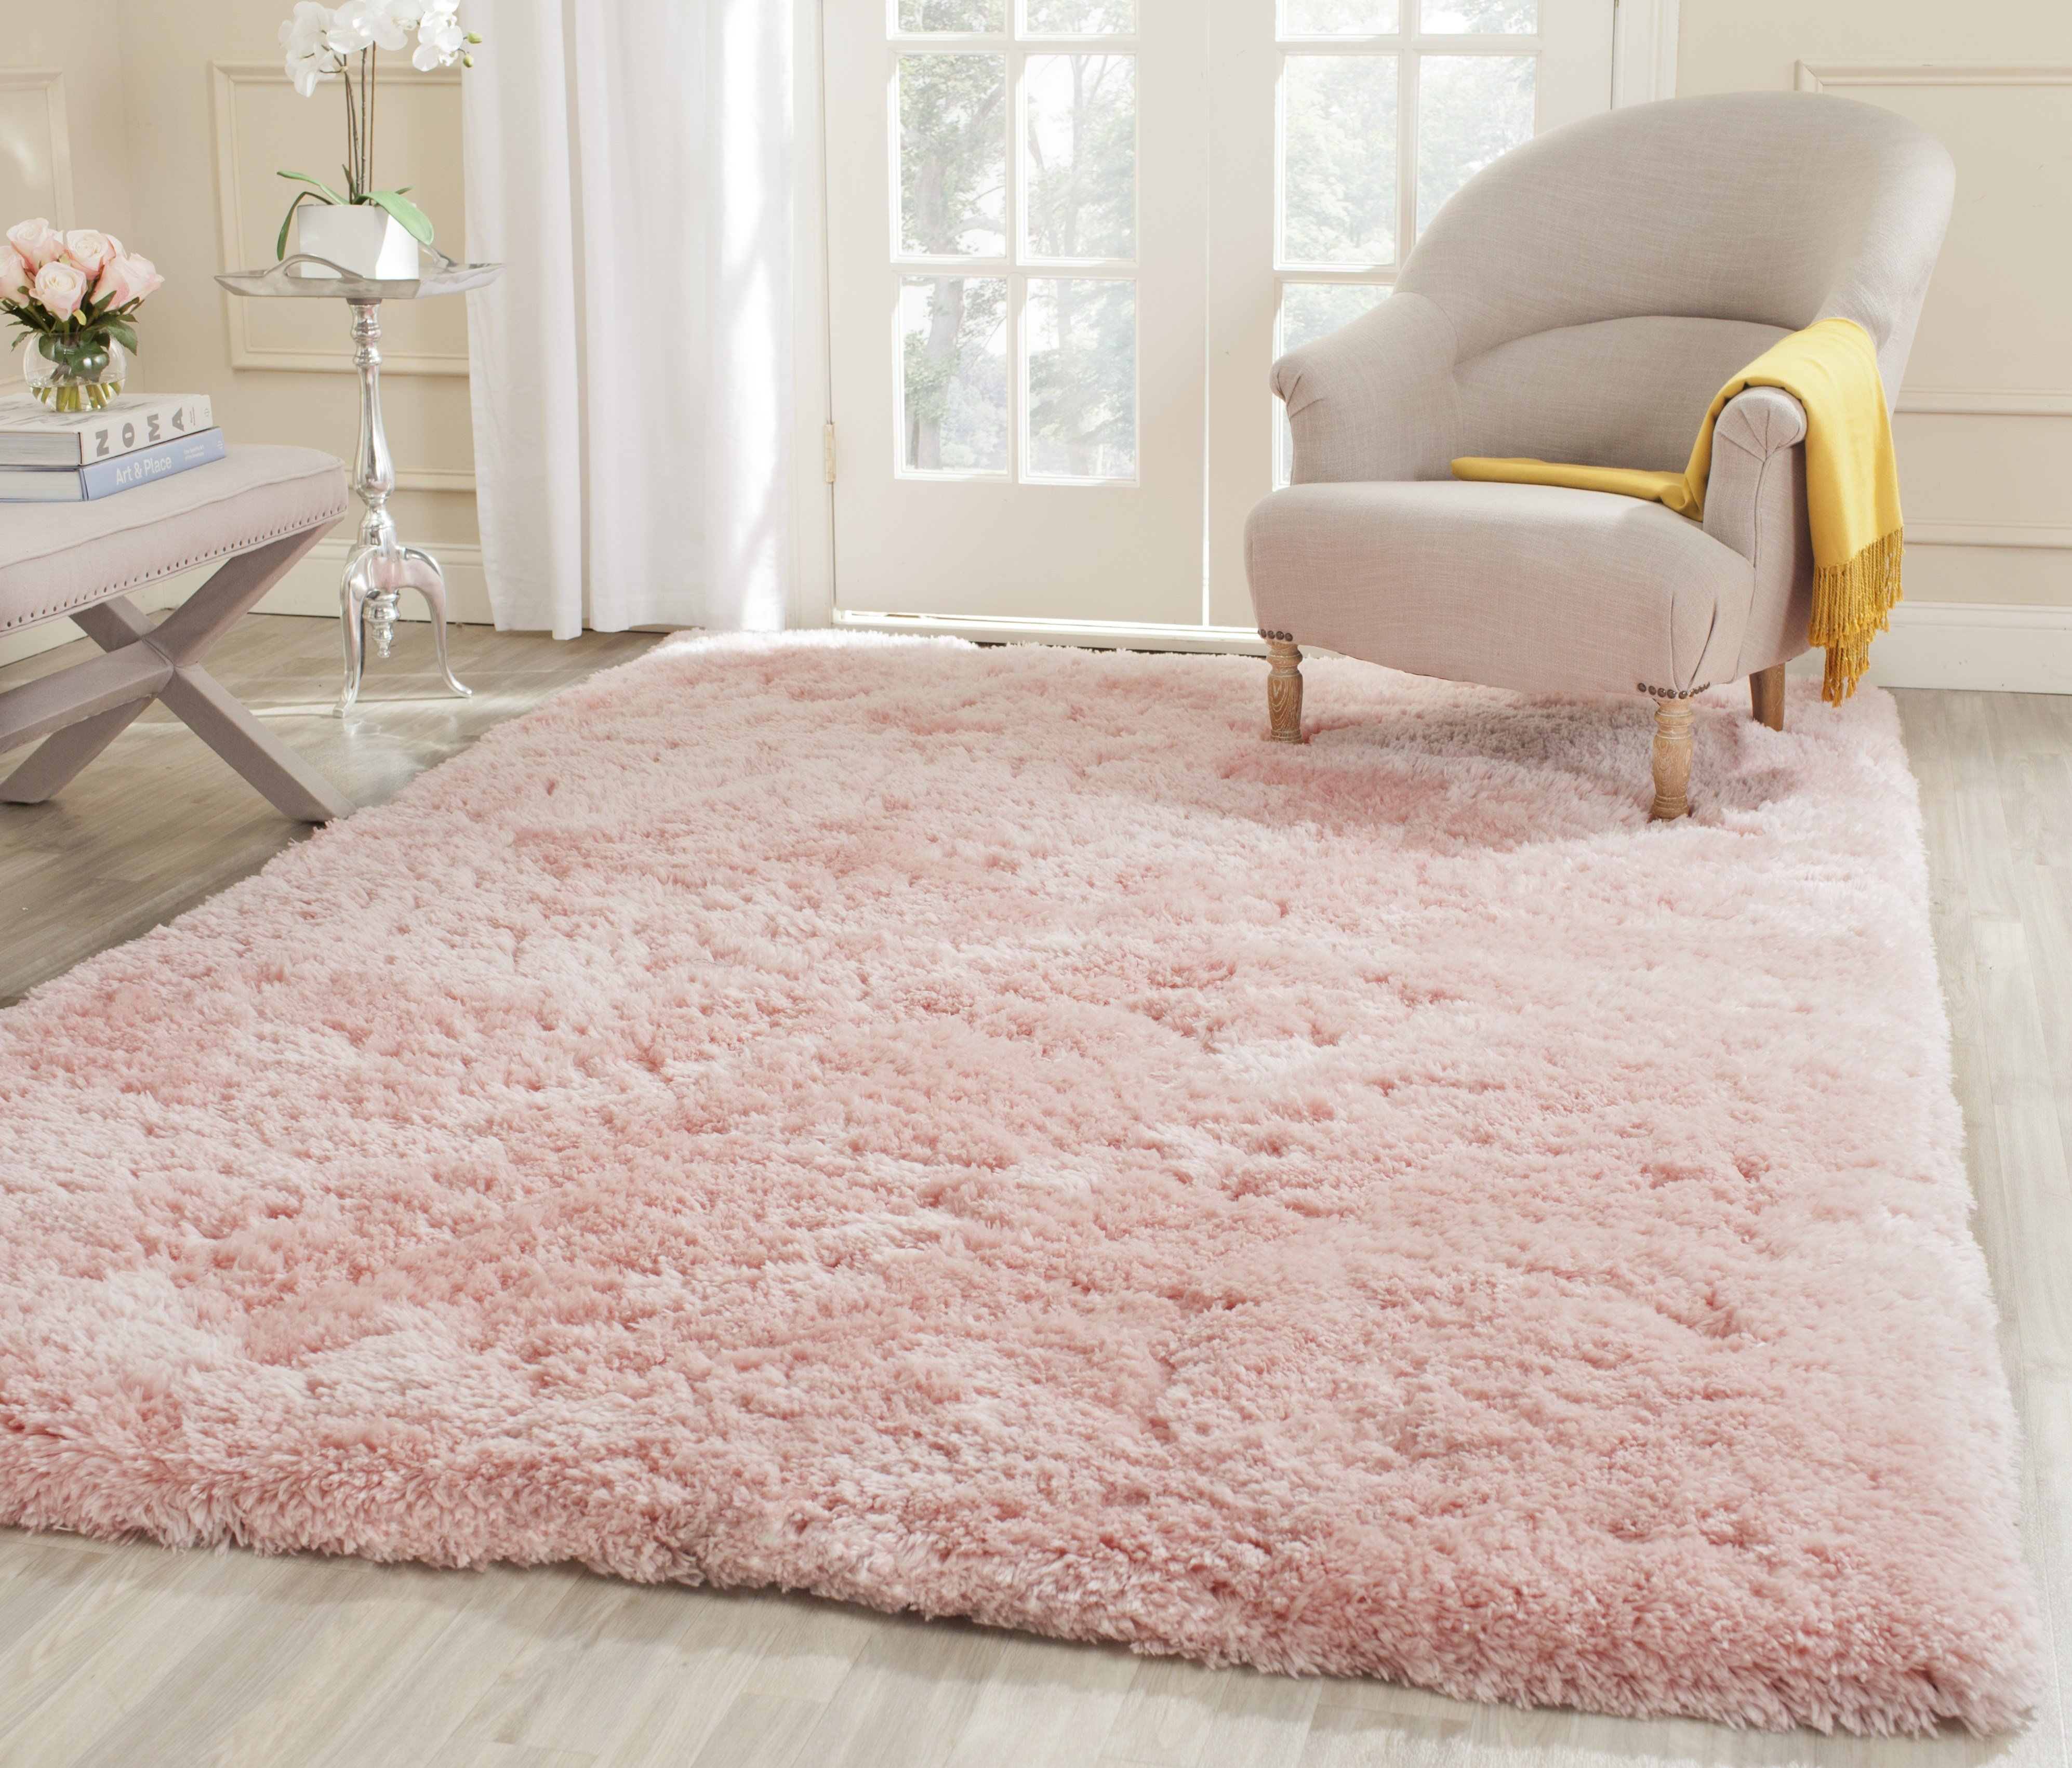 Best Safavieh Hand Tufted Pink Polyster Sh*G Area Rugs Sg270P With Pictures